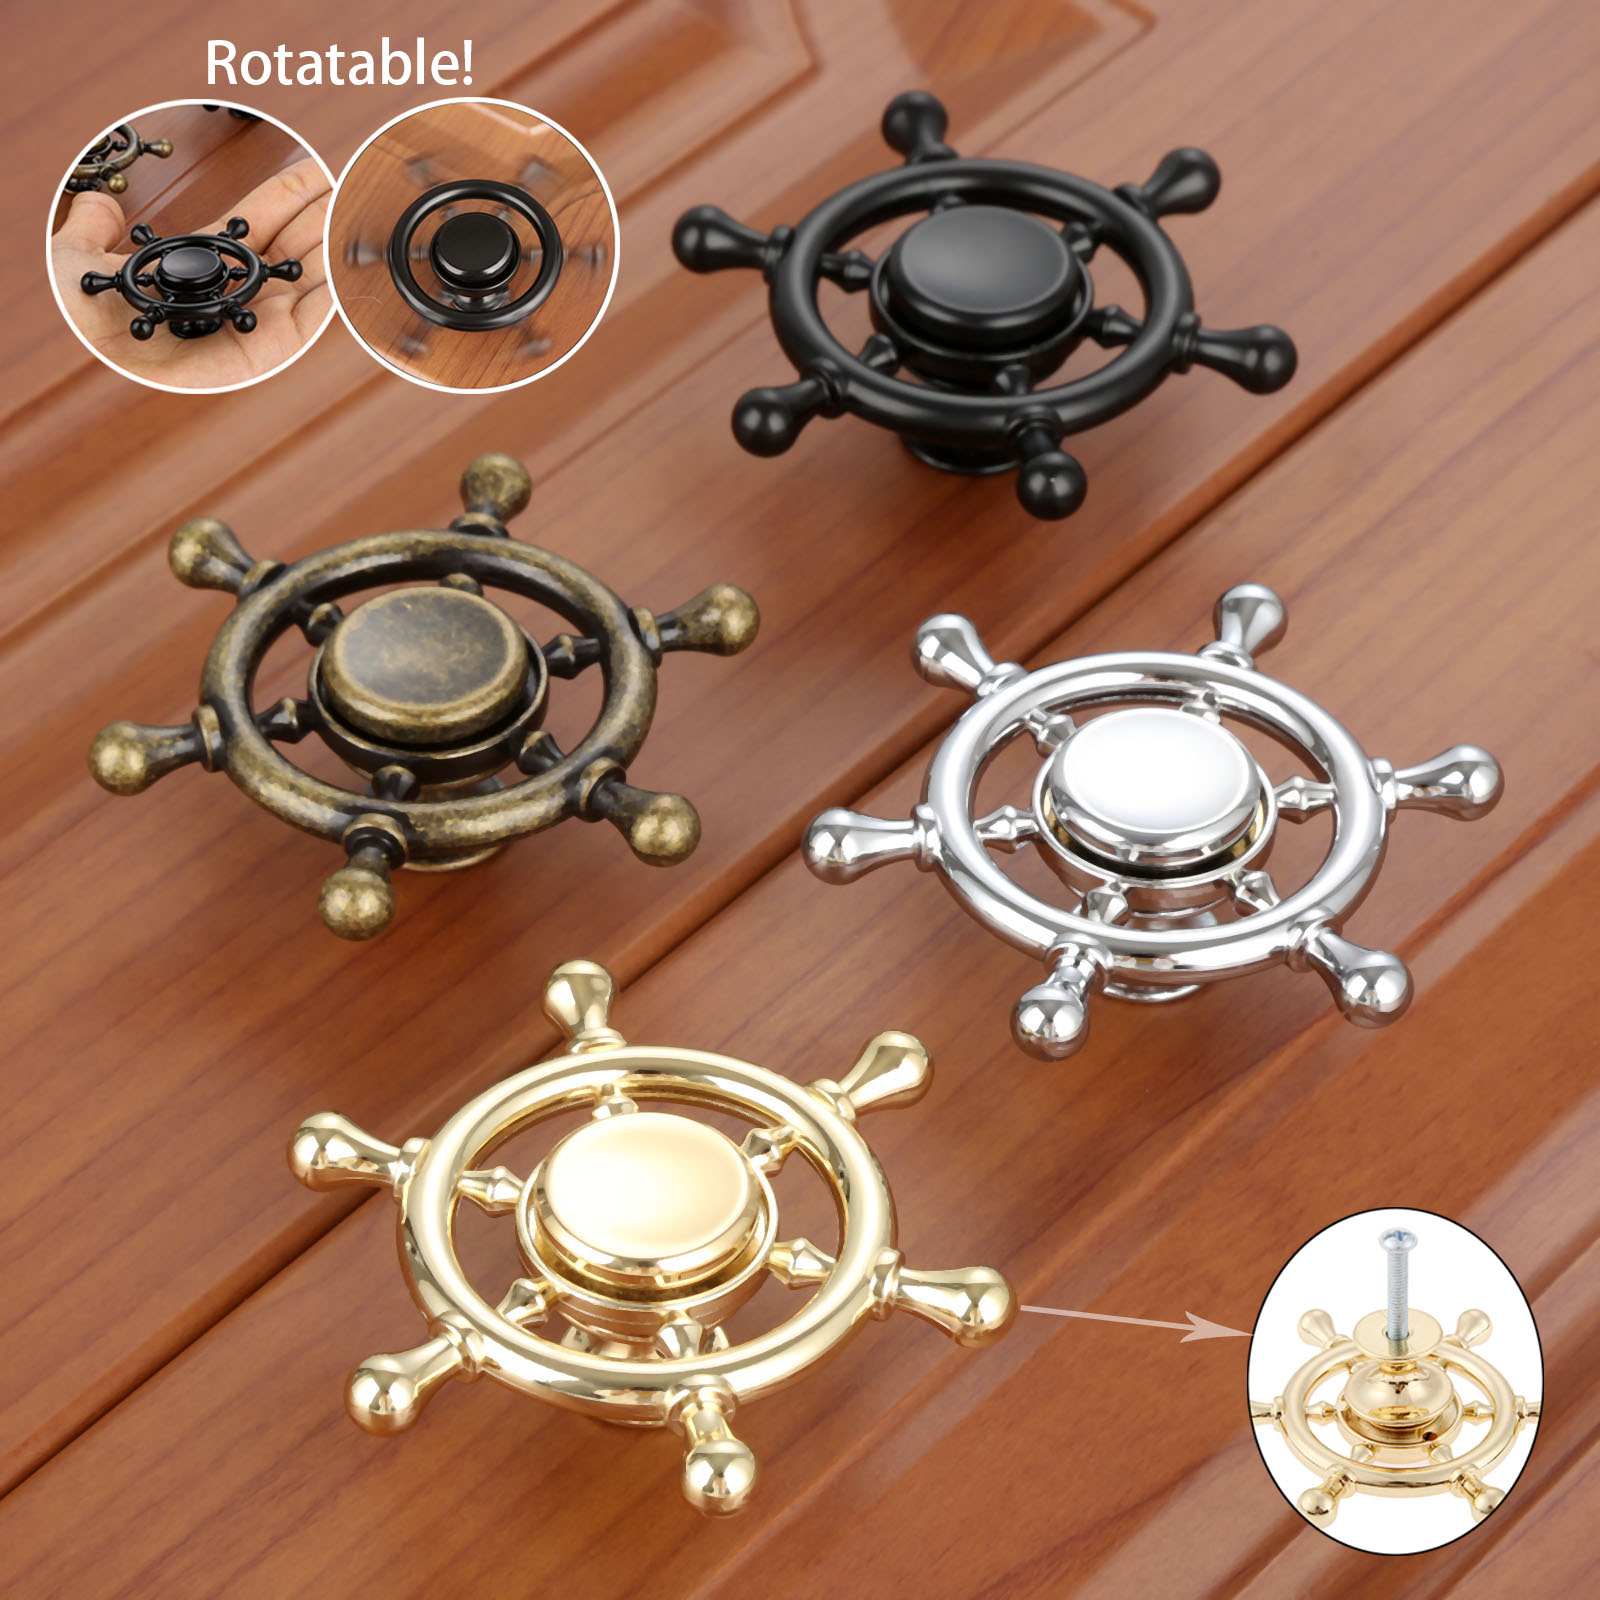 DRELD Creative 71mm Furniture Handle poignee meuble Rotatable Cabinet Knobs and Handles Door Cupboard Drawer Kitchen Pull Handle dreld teapot antique furniture handle alloy drawer door knobs closet cupboard kitchen pull handle cabinet knobs and handles